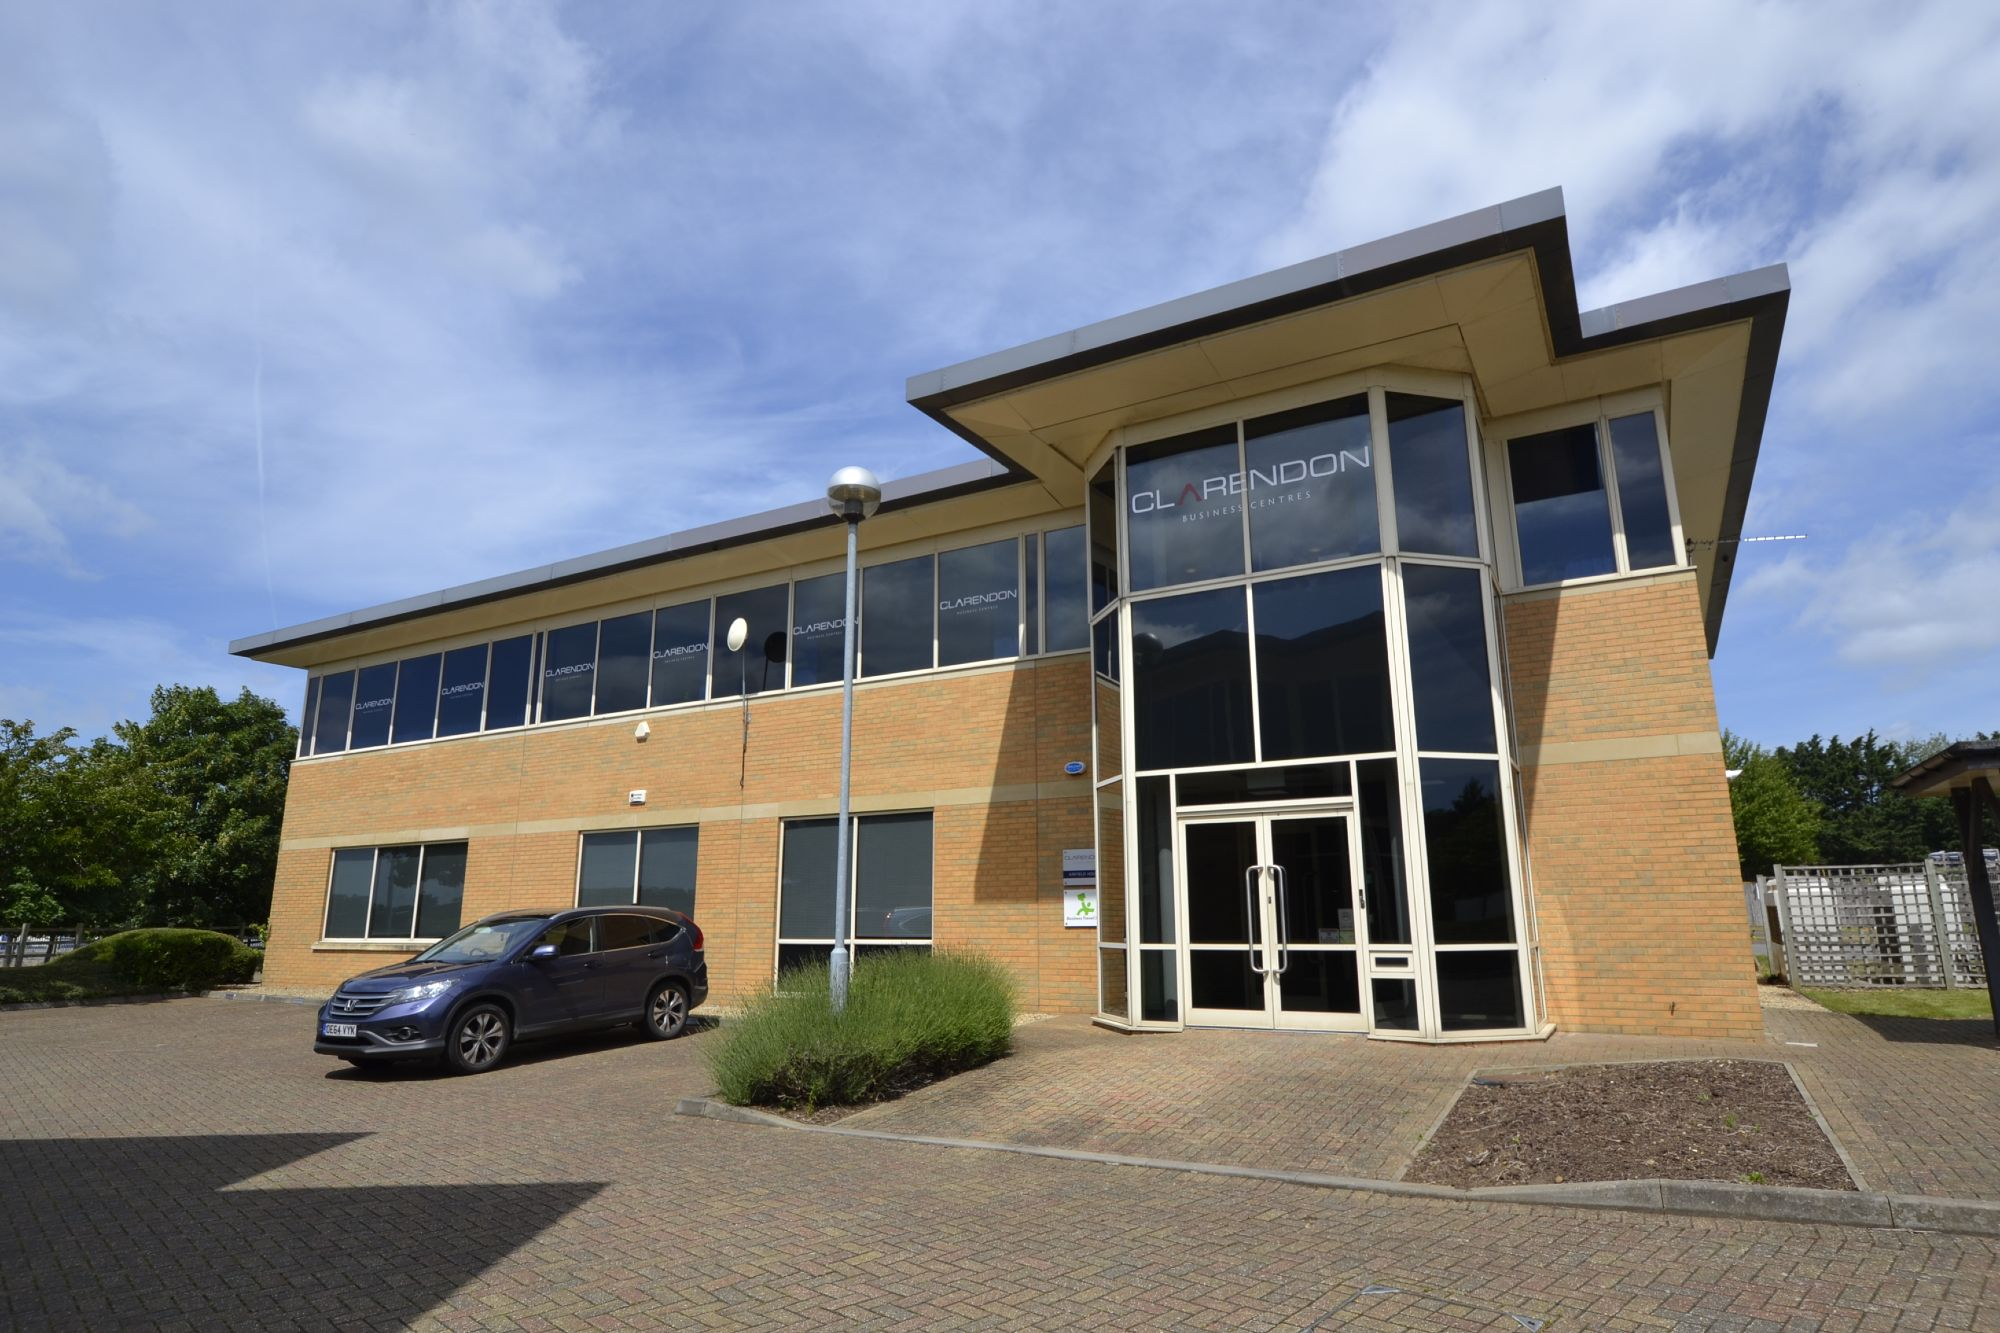 Similar property | A1 Kingston Business Park - Kingston Bagpuize